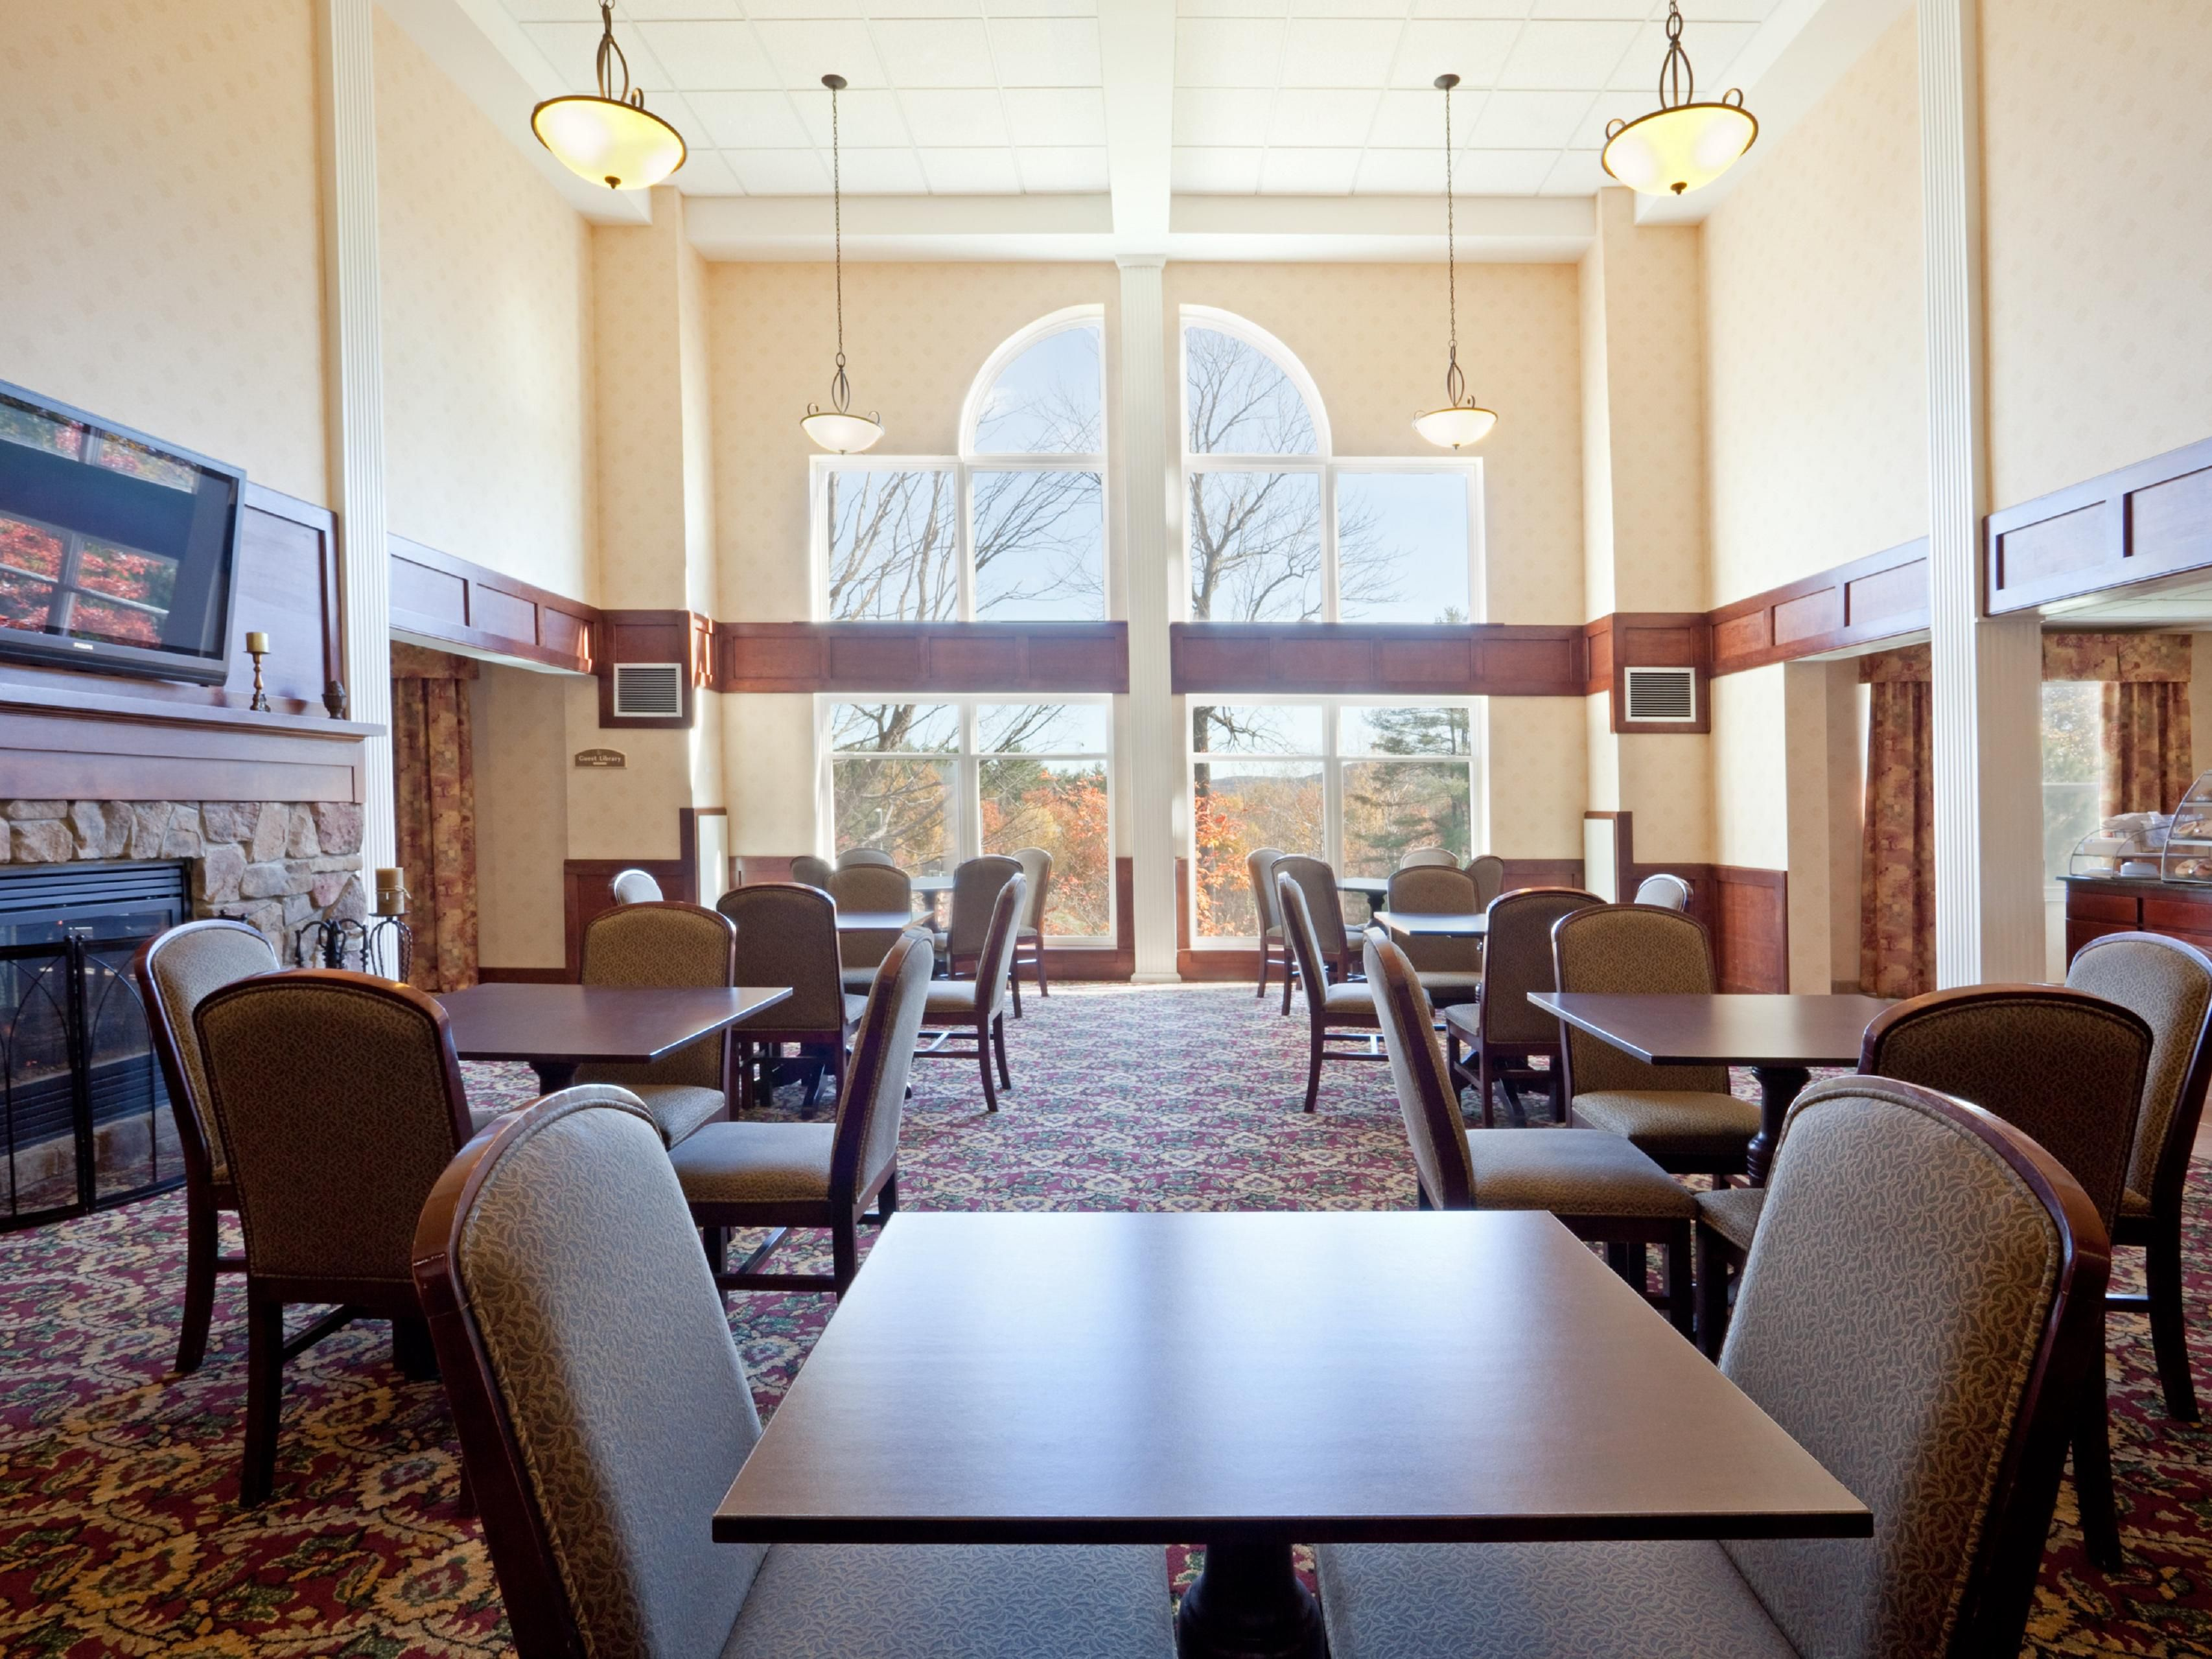 Holiday Inn Express Amp Suites Hotels White River Junction